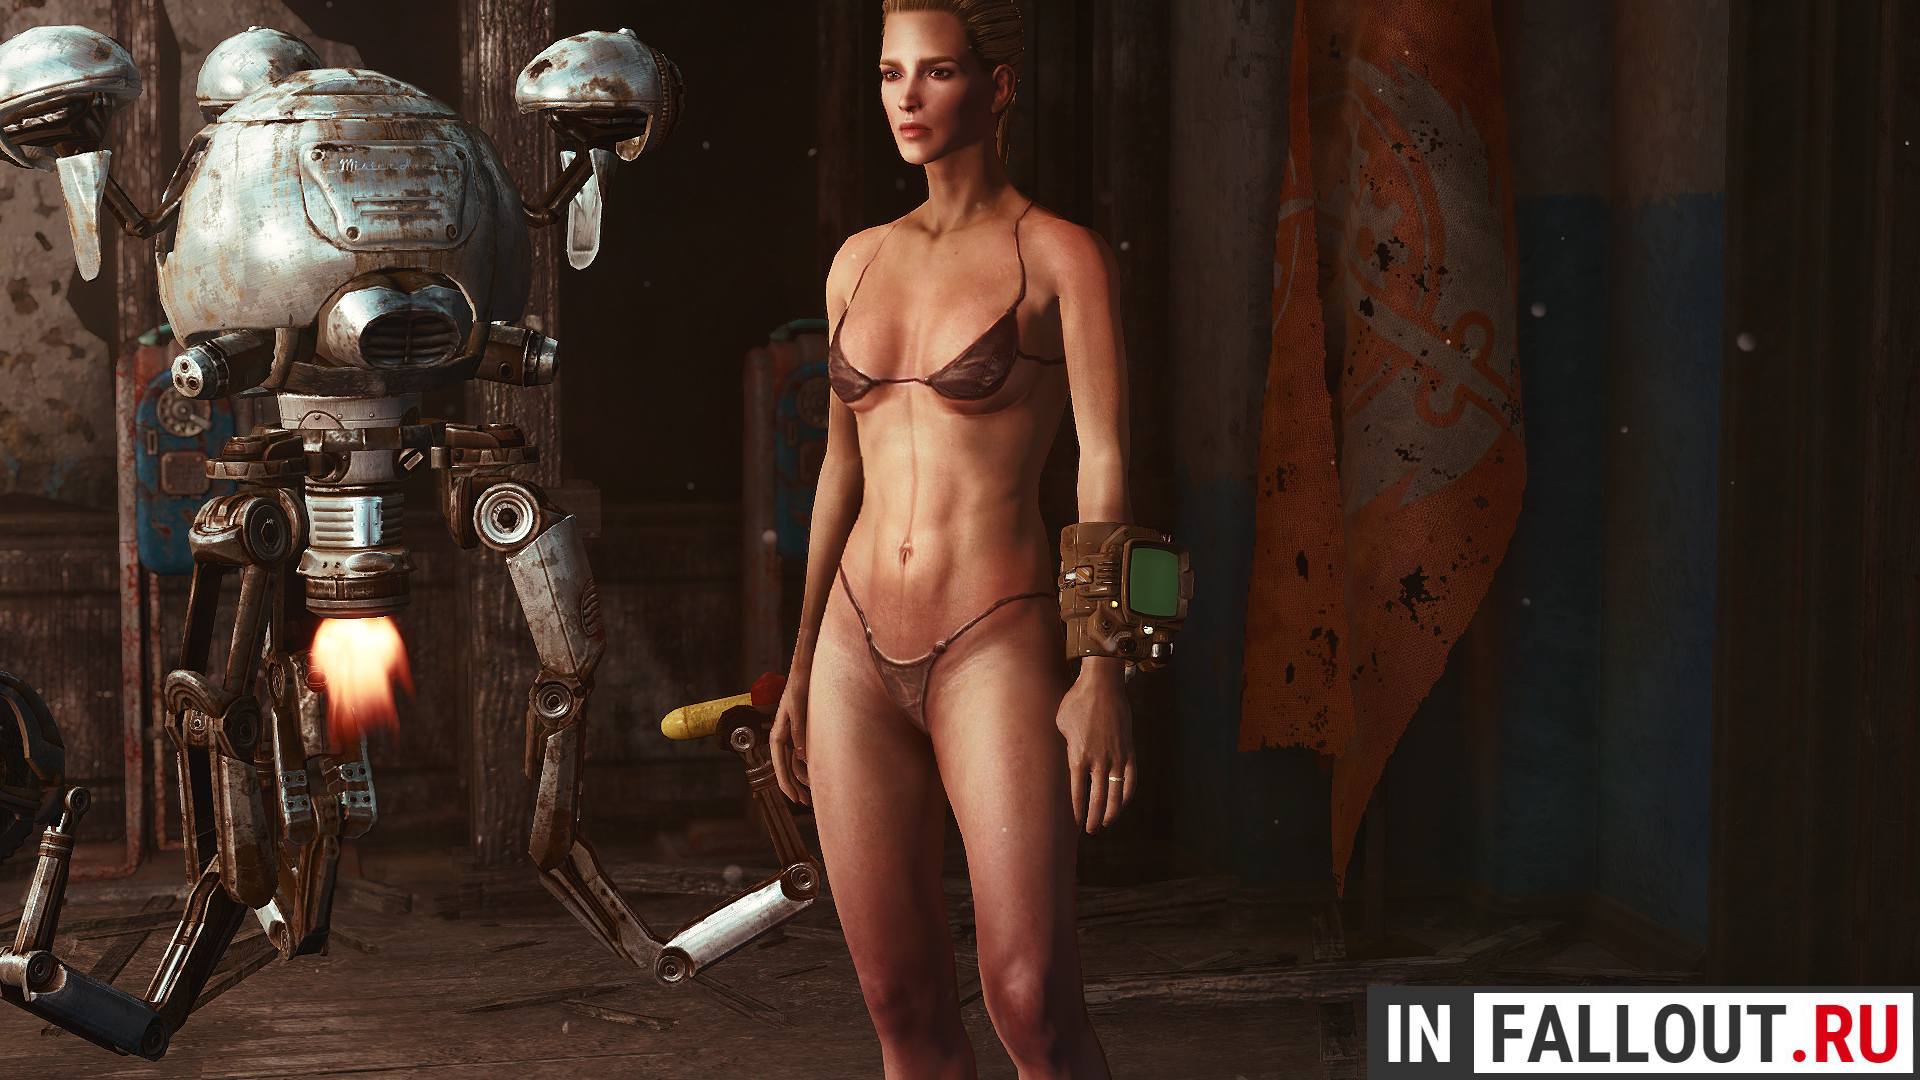 Fallout 4 naked chicks naked images